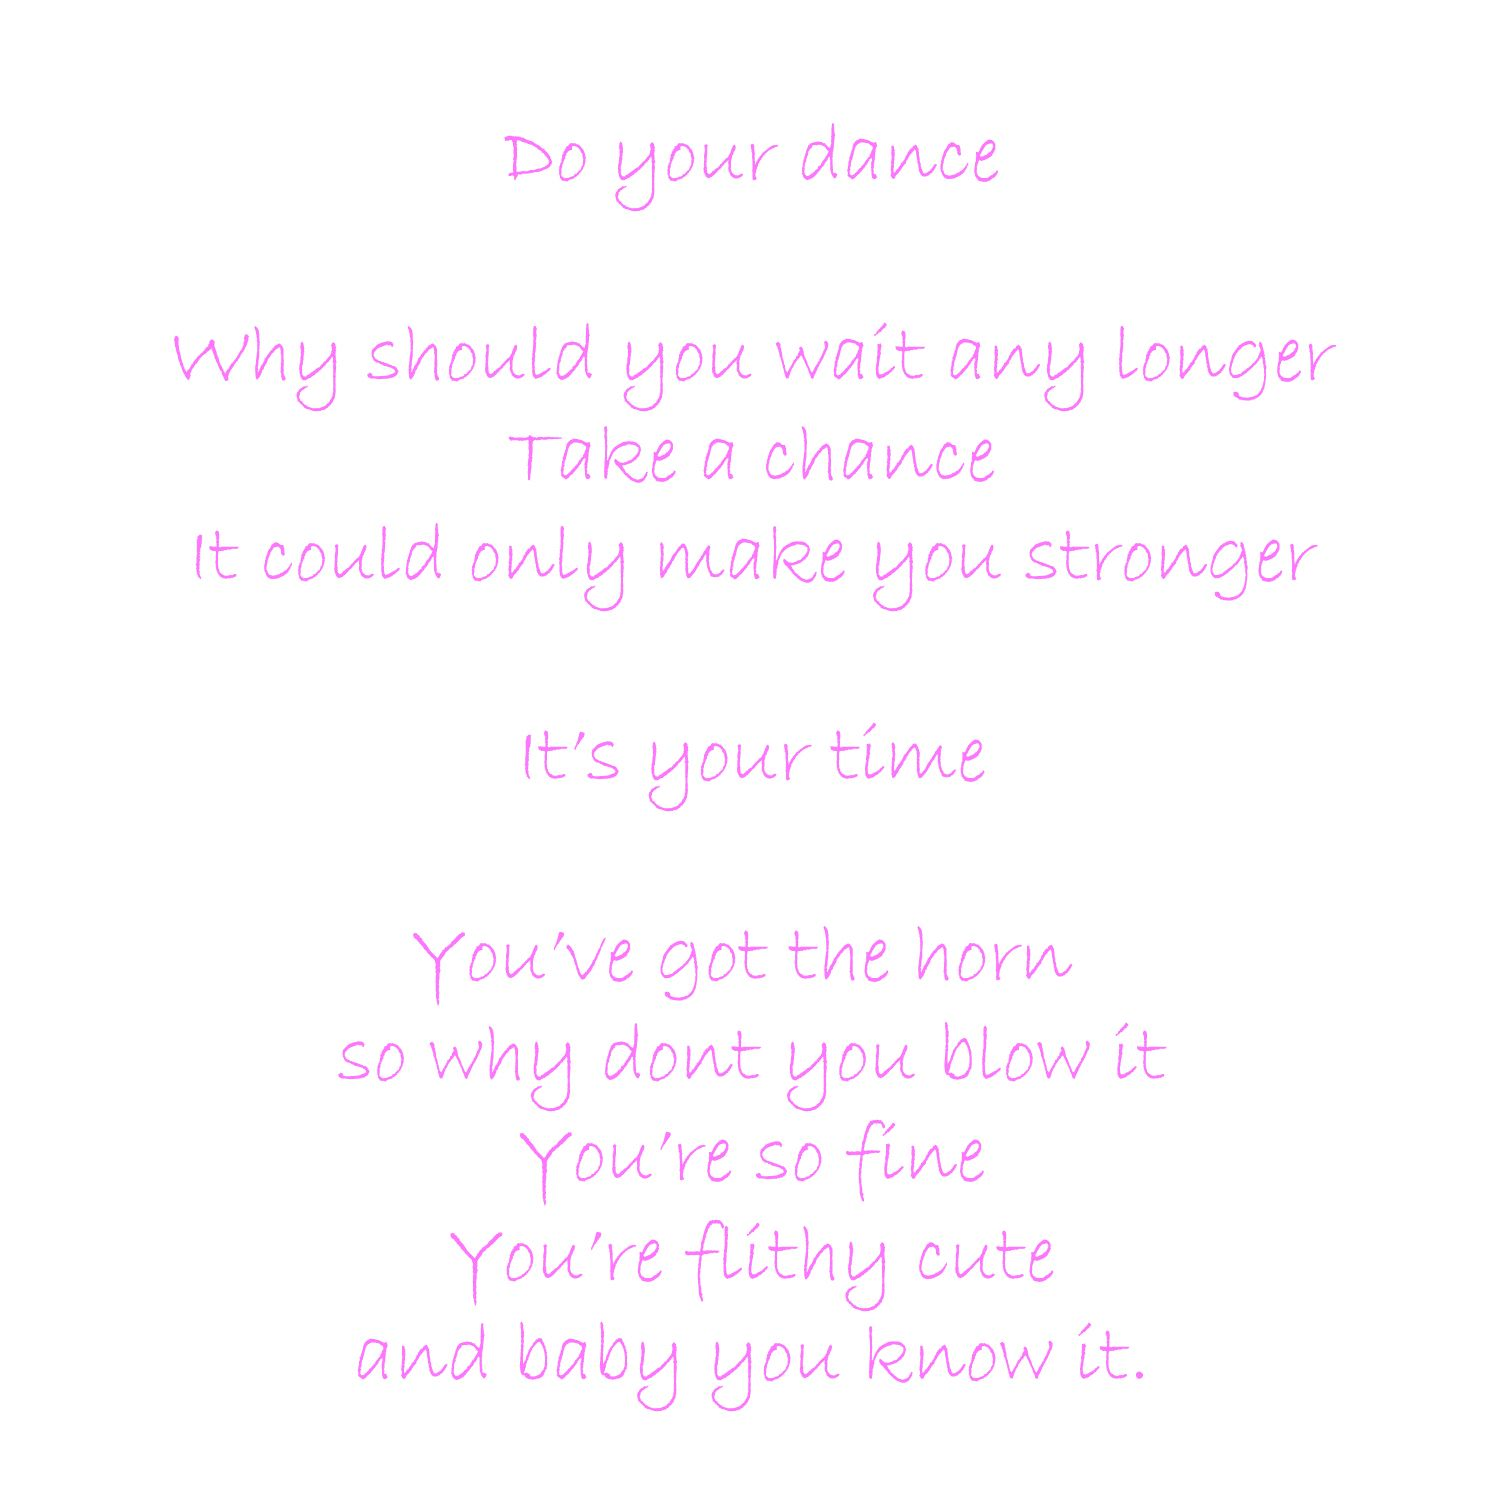 Prince sexy dancer lyrics